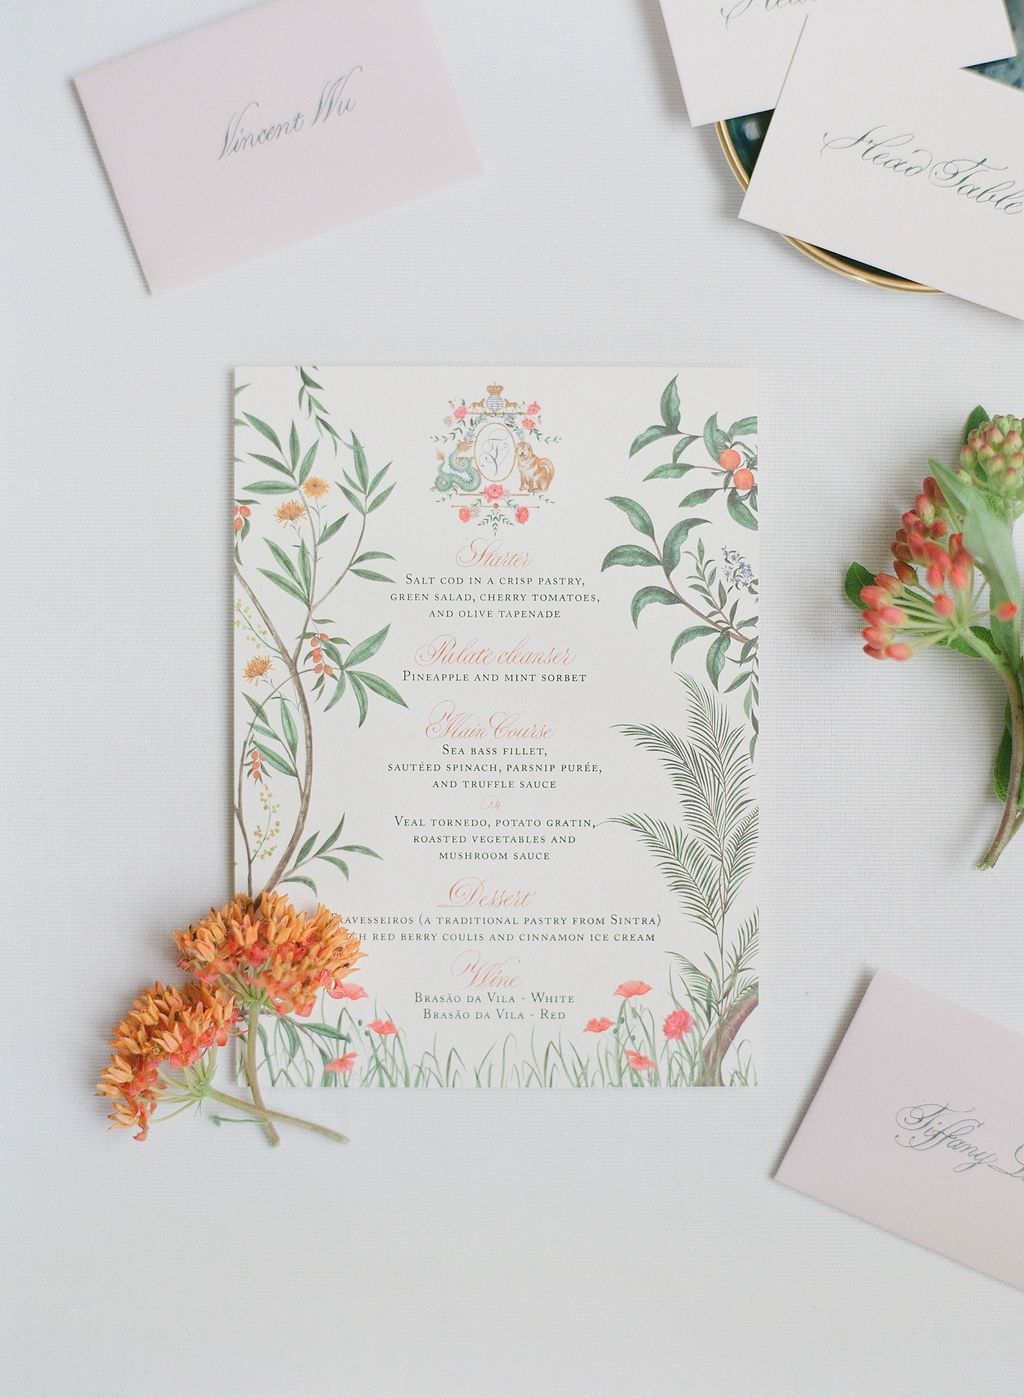 Stationery Details And Wedding Monogram By Kinship Press In 2020 Illustrated Invitations Wedding Stationery Wedding Cards